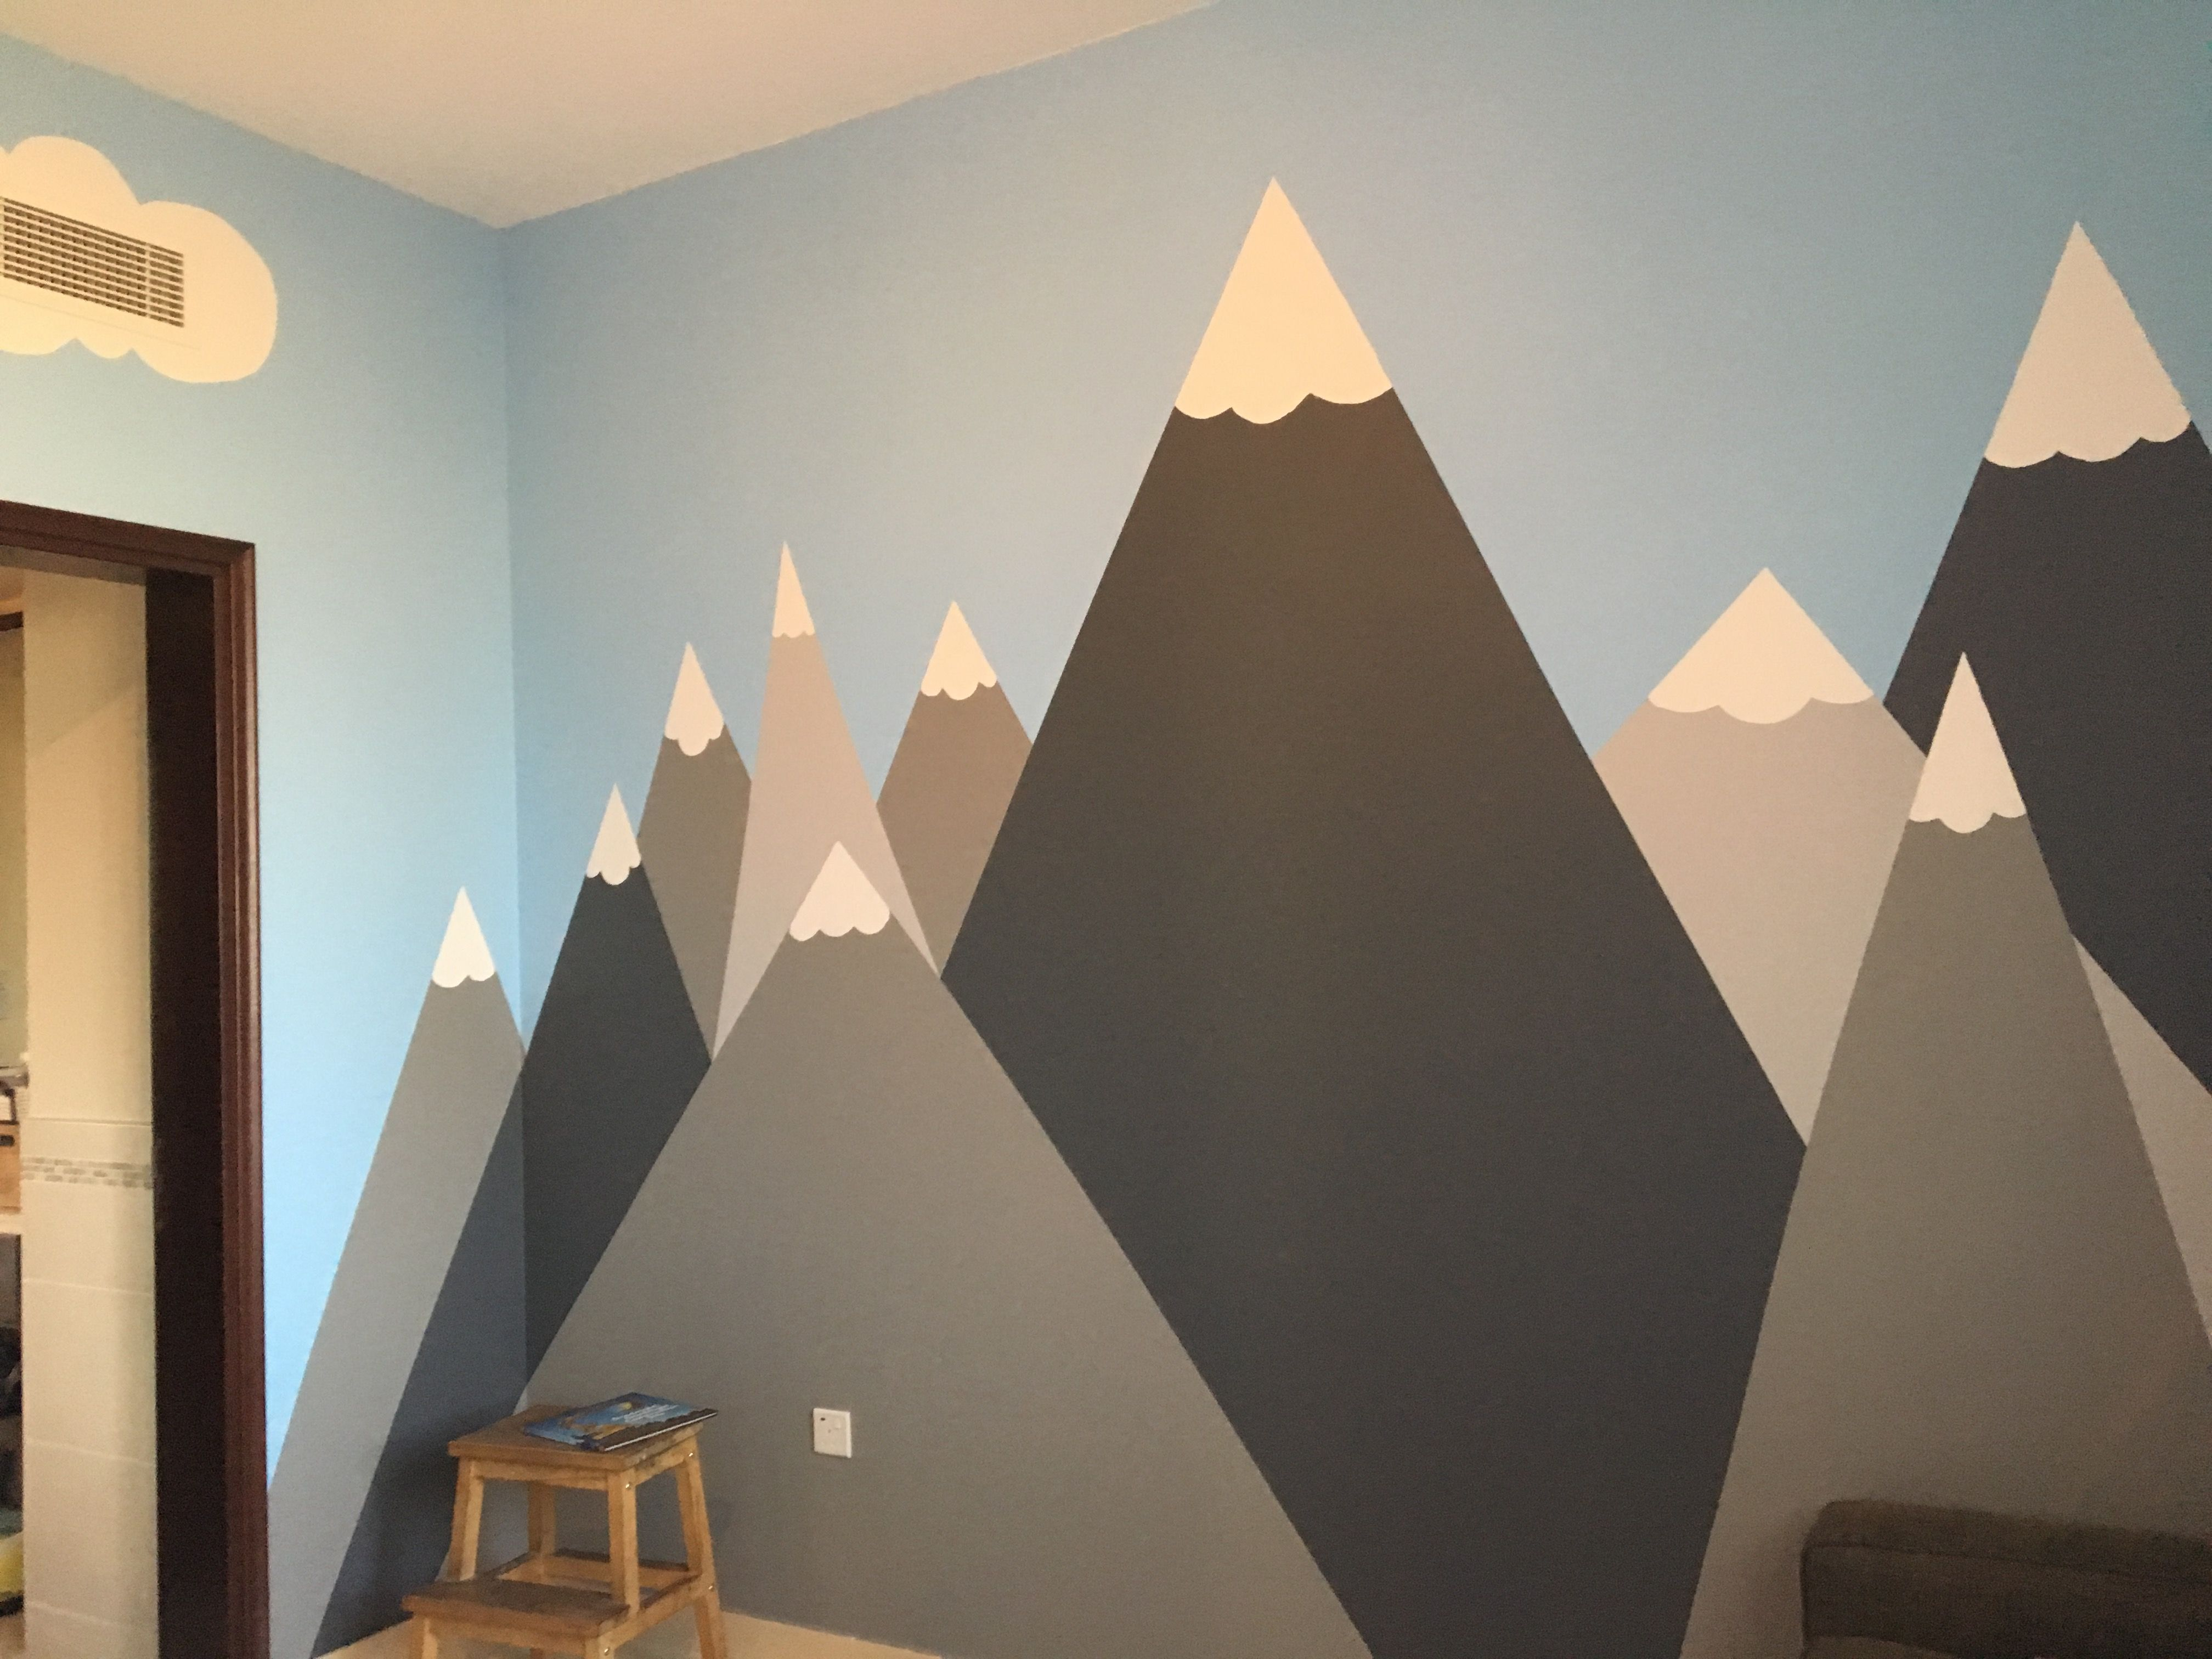 I Used Benjamin Moore Chalkboard Paint To Create These Mountains In My Son S Room Wall Mural Adventure Ro Climbing Wall Kids Diy Climbing Wall Adventure Room